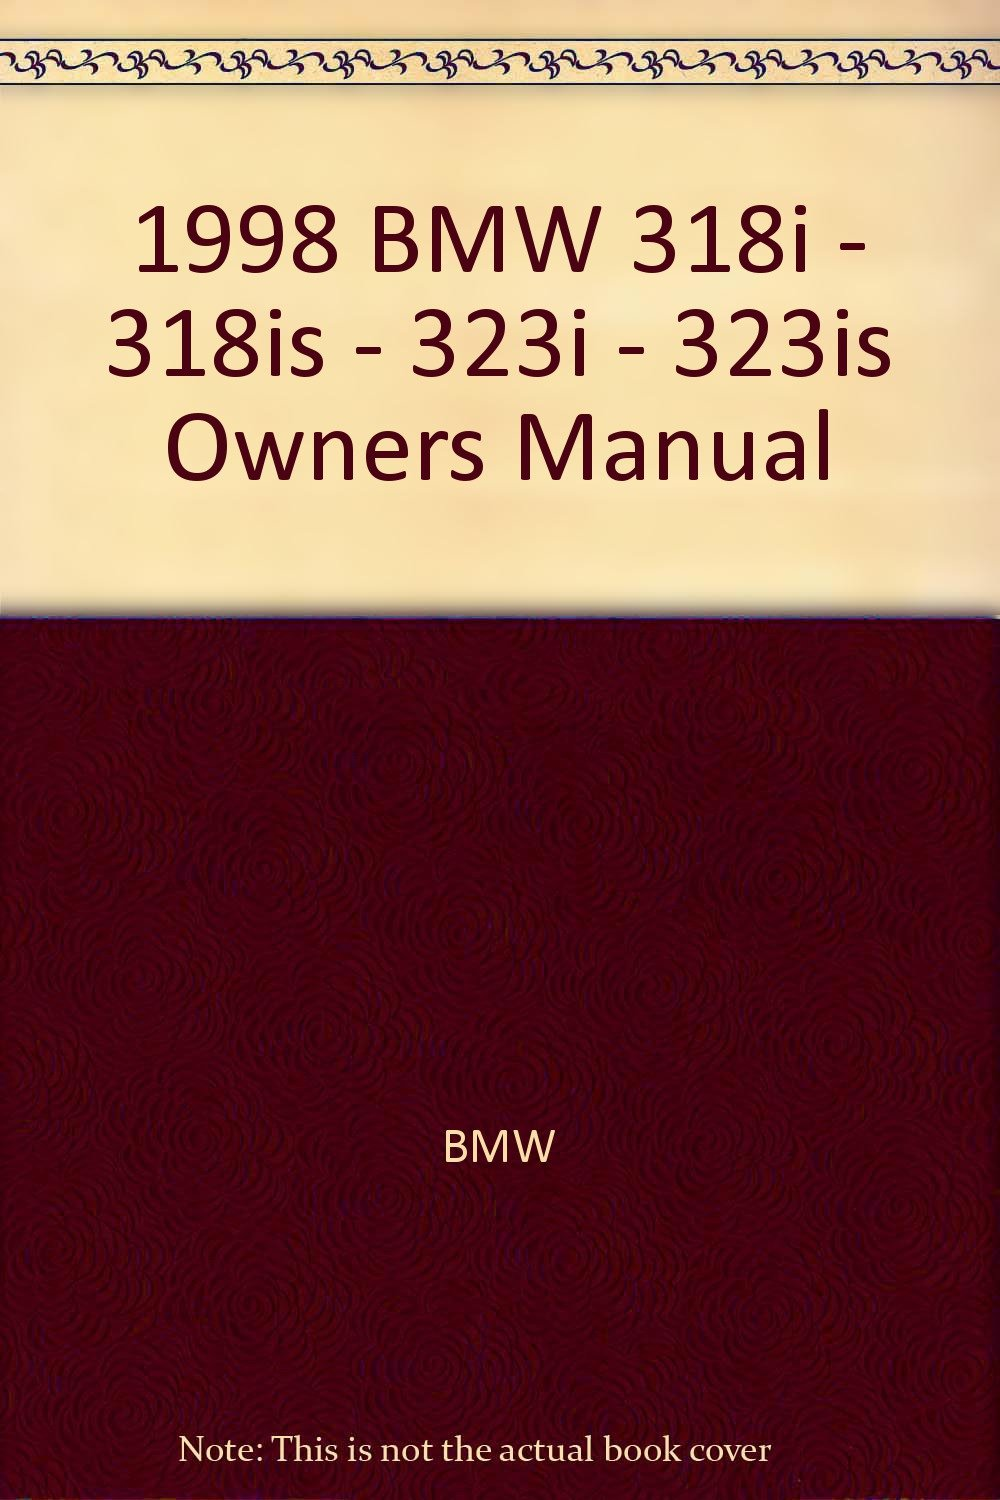 1998 BMW 318i - 318is - 323i - 323is Owners Manual: BMW: Amazon.com: Books